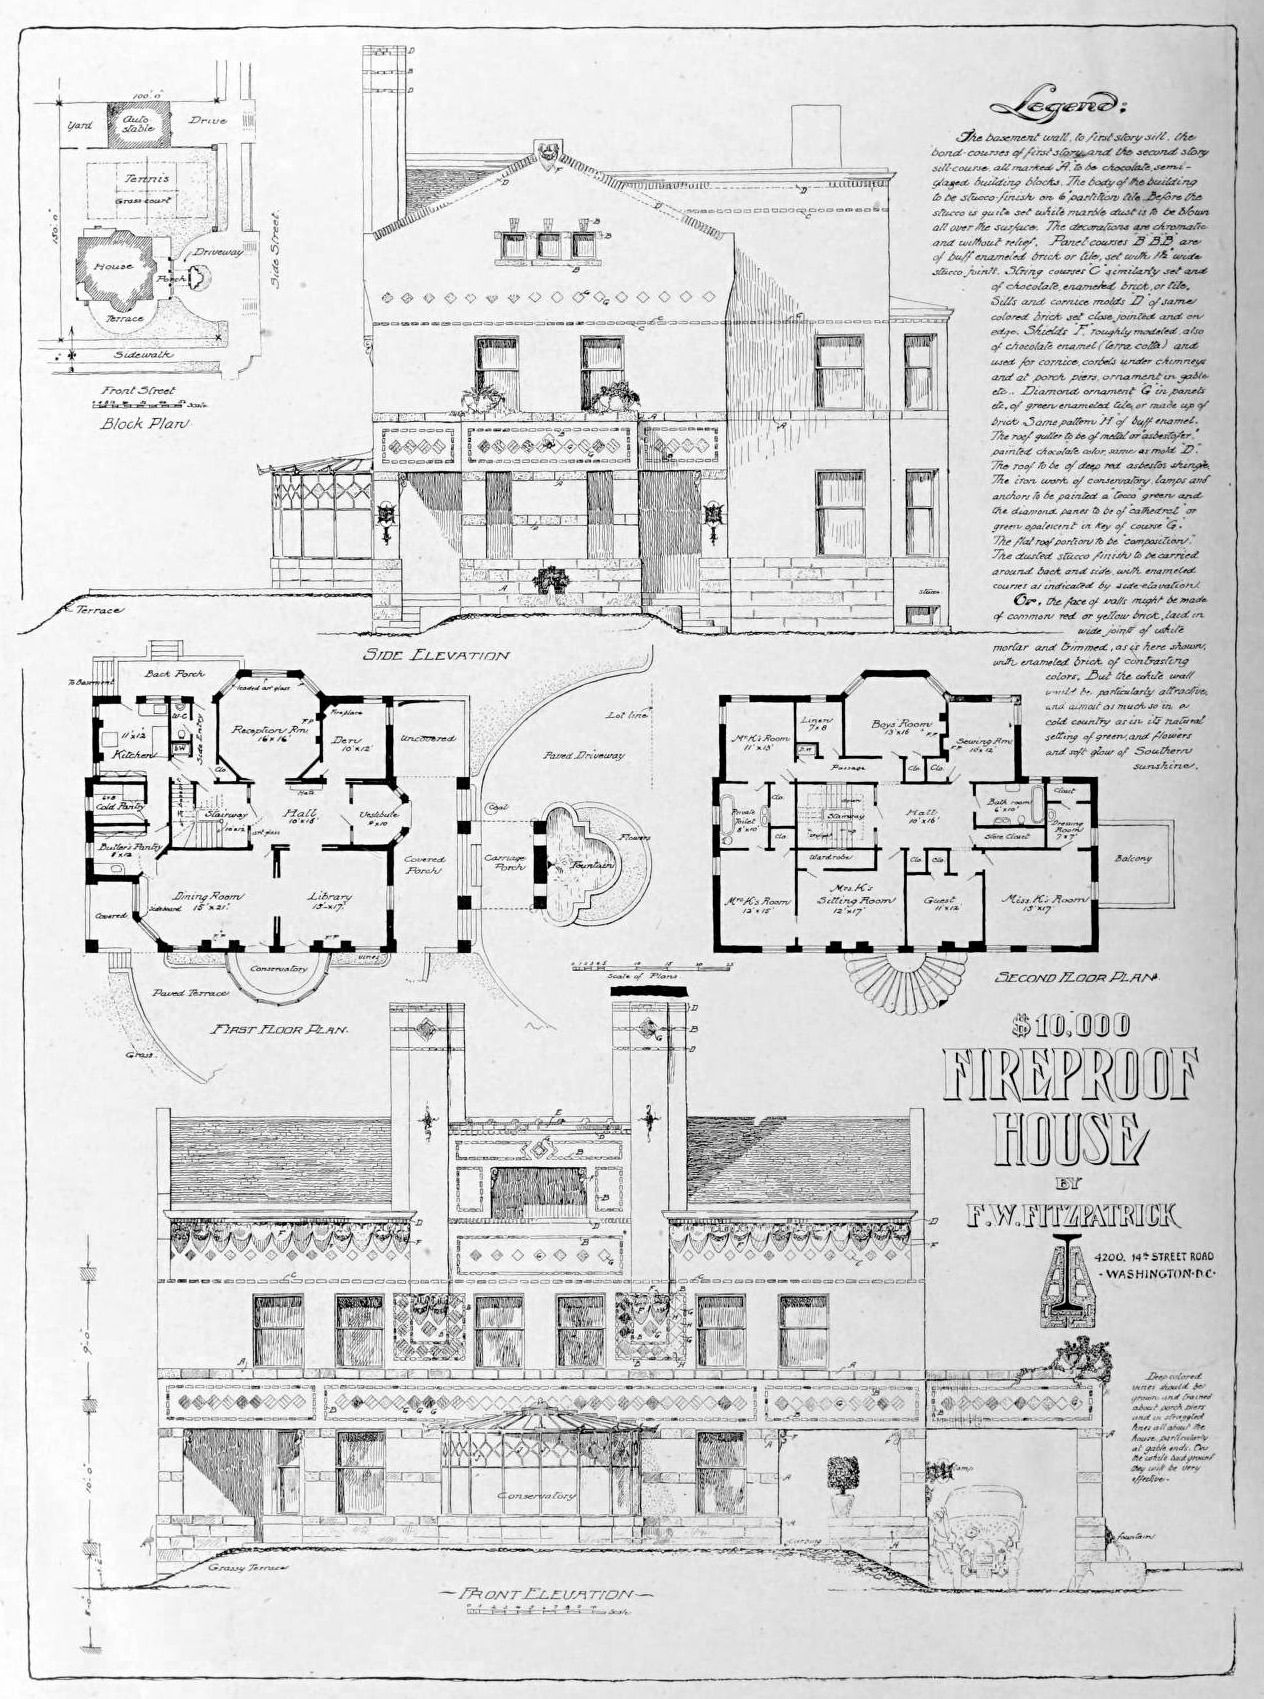 Design For A 10 000 Fireproof House Archi Maps Photo Architecture Mapping Architecture Drawing Architecture